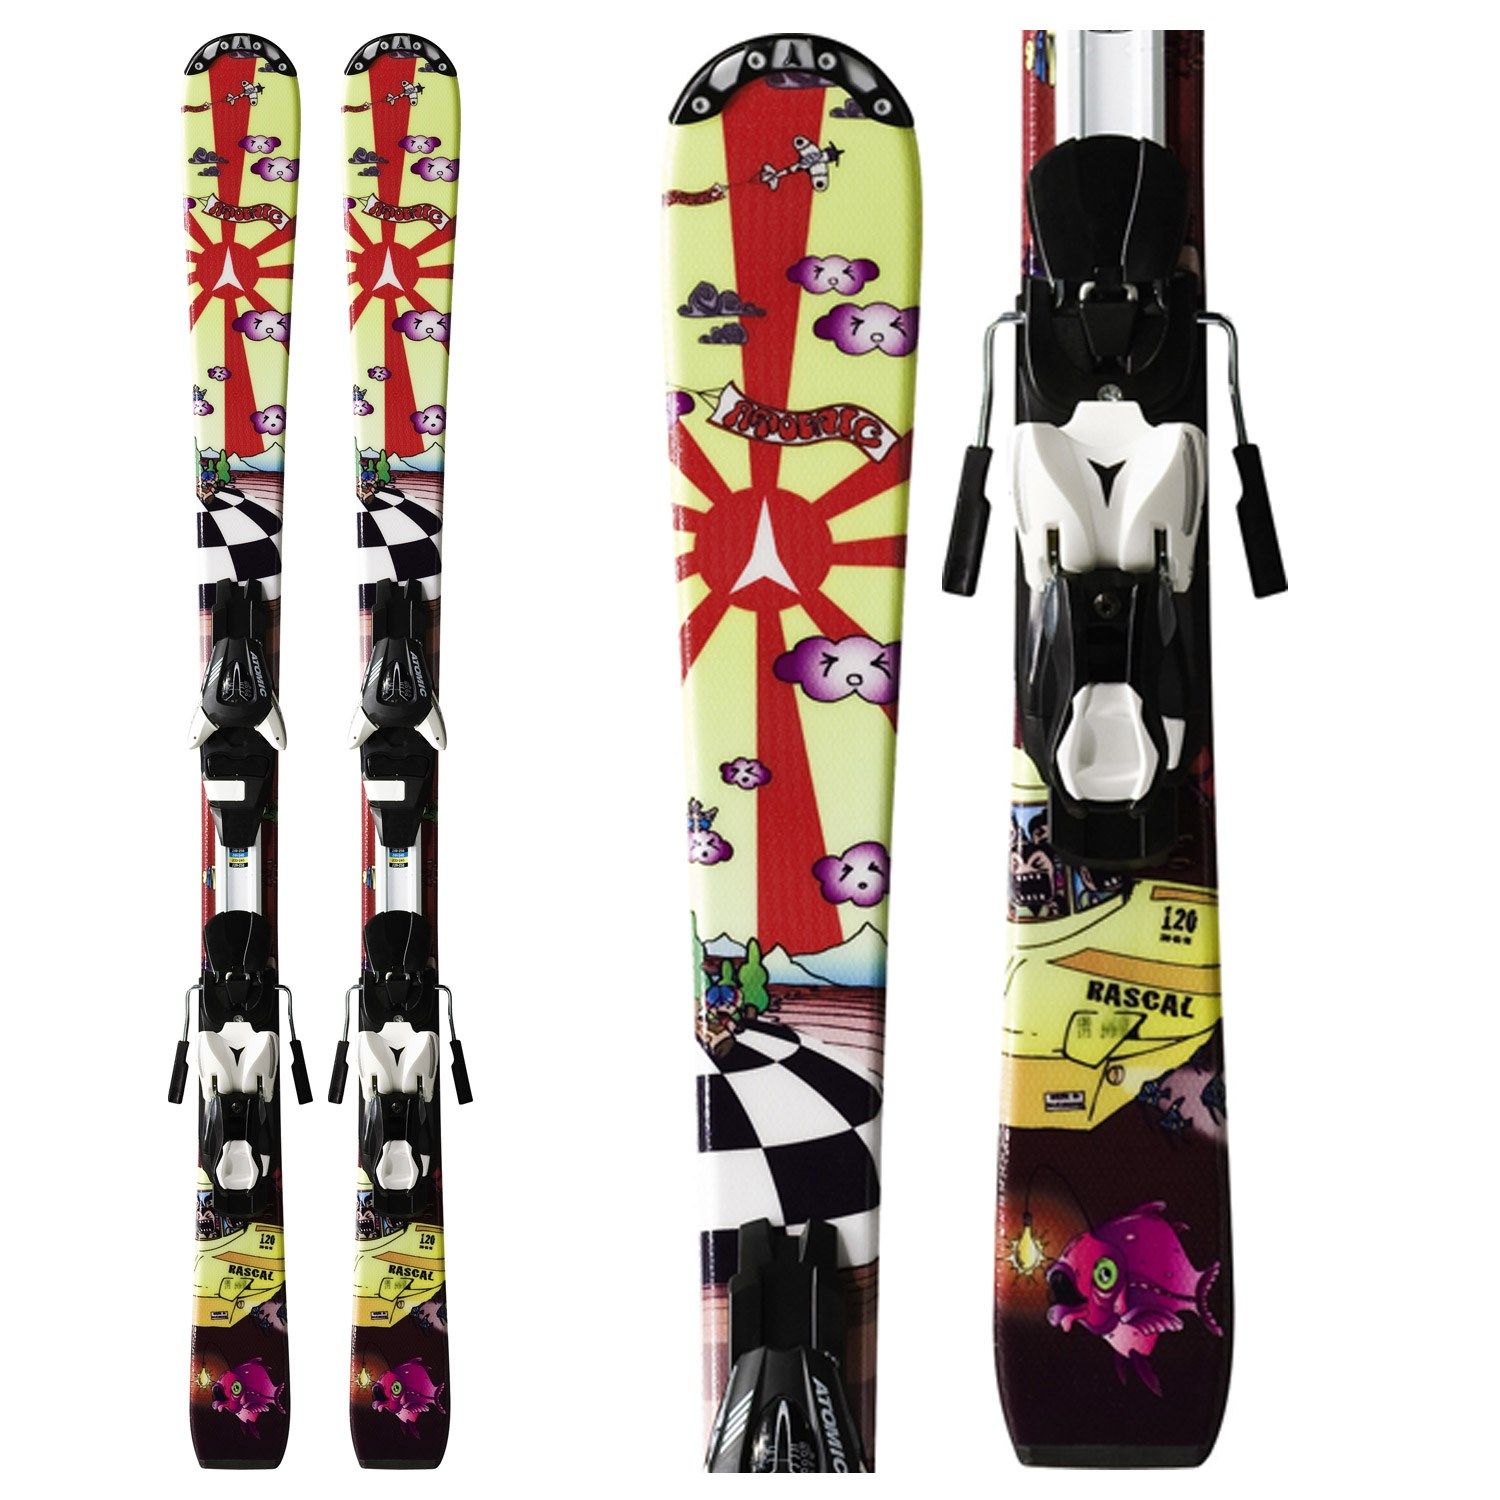 Atomic Rascal Skis + Evox 045 Bindings - Youth 2012 | evo ...